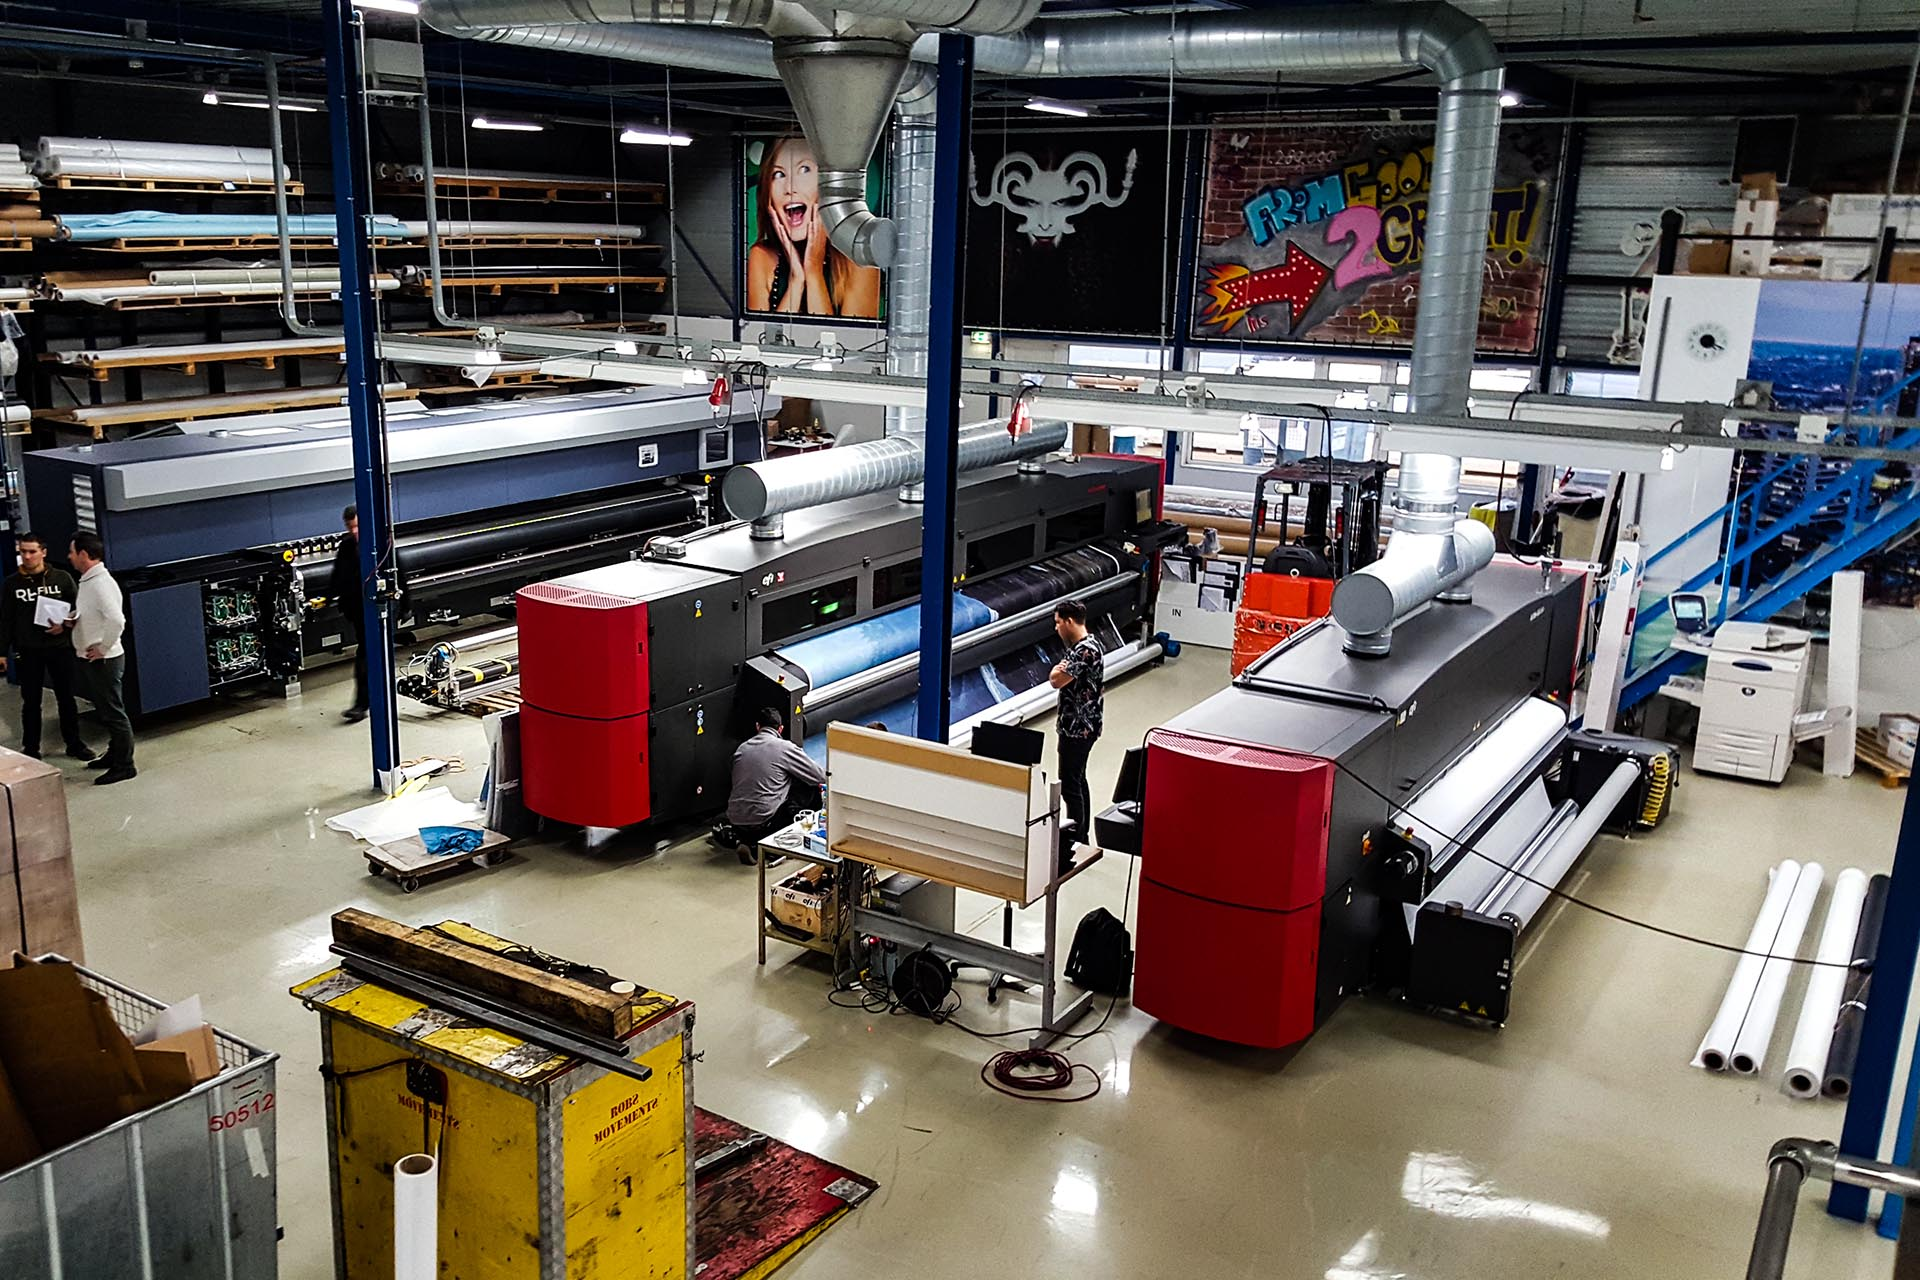 Faber Exposize More Printers